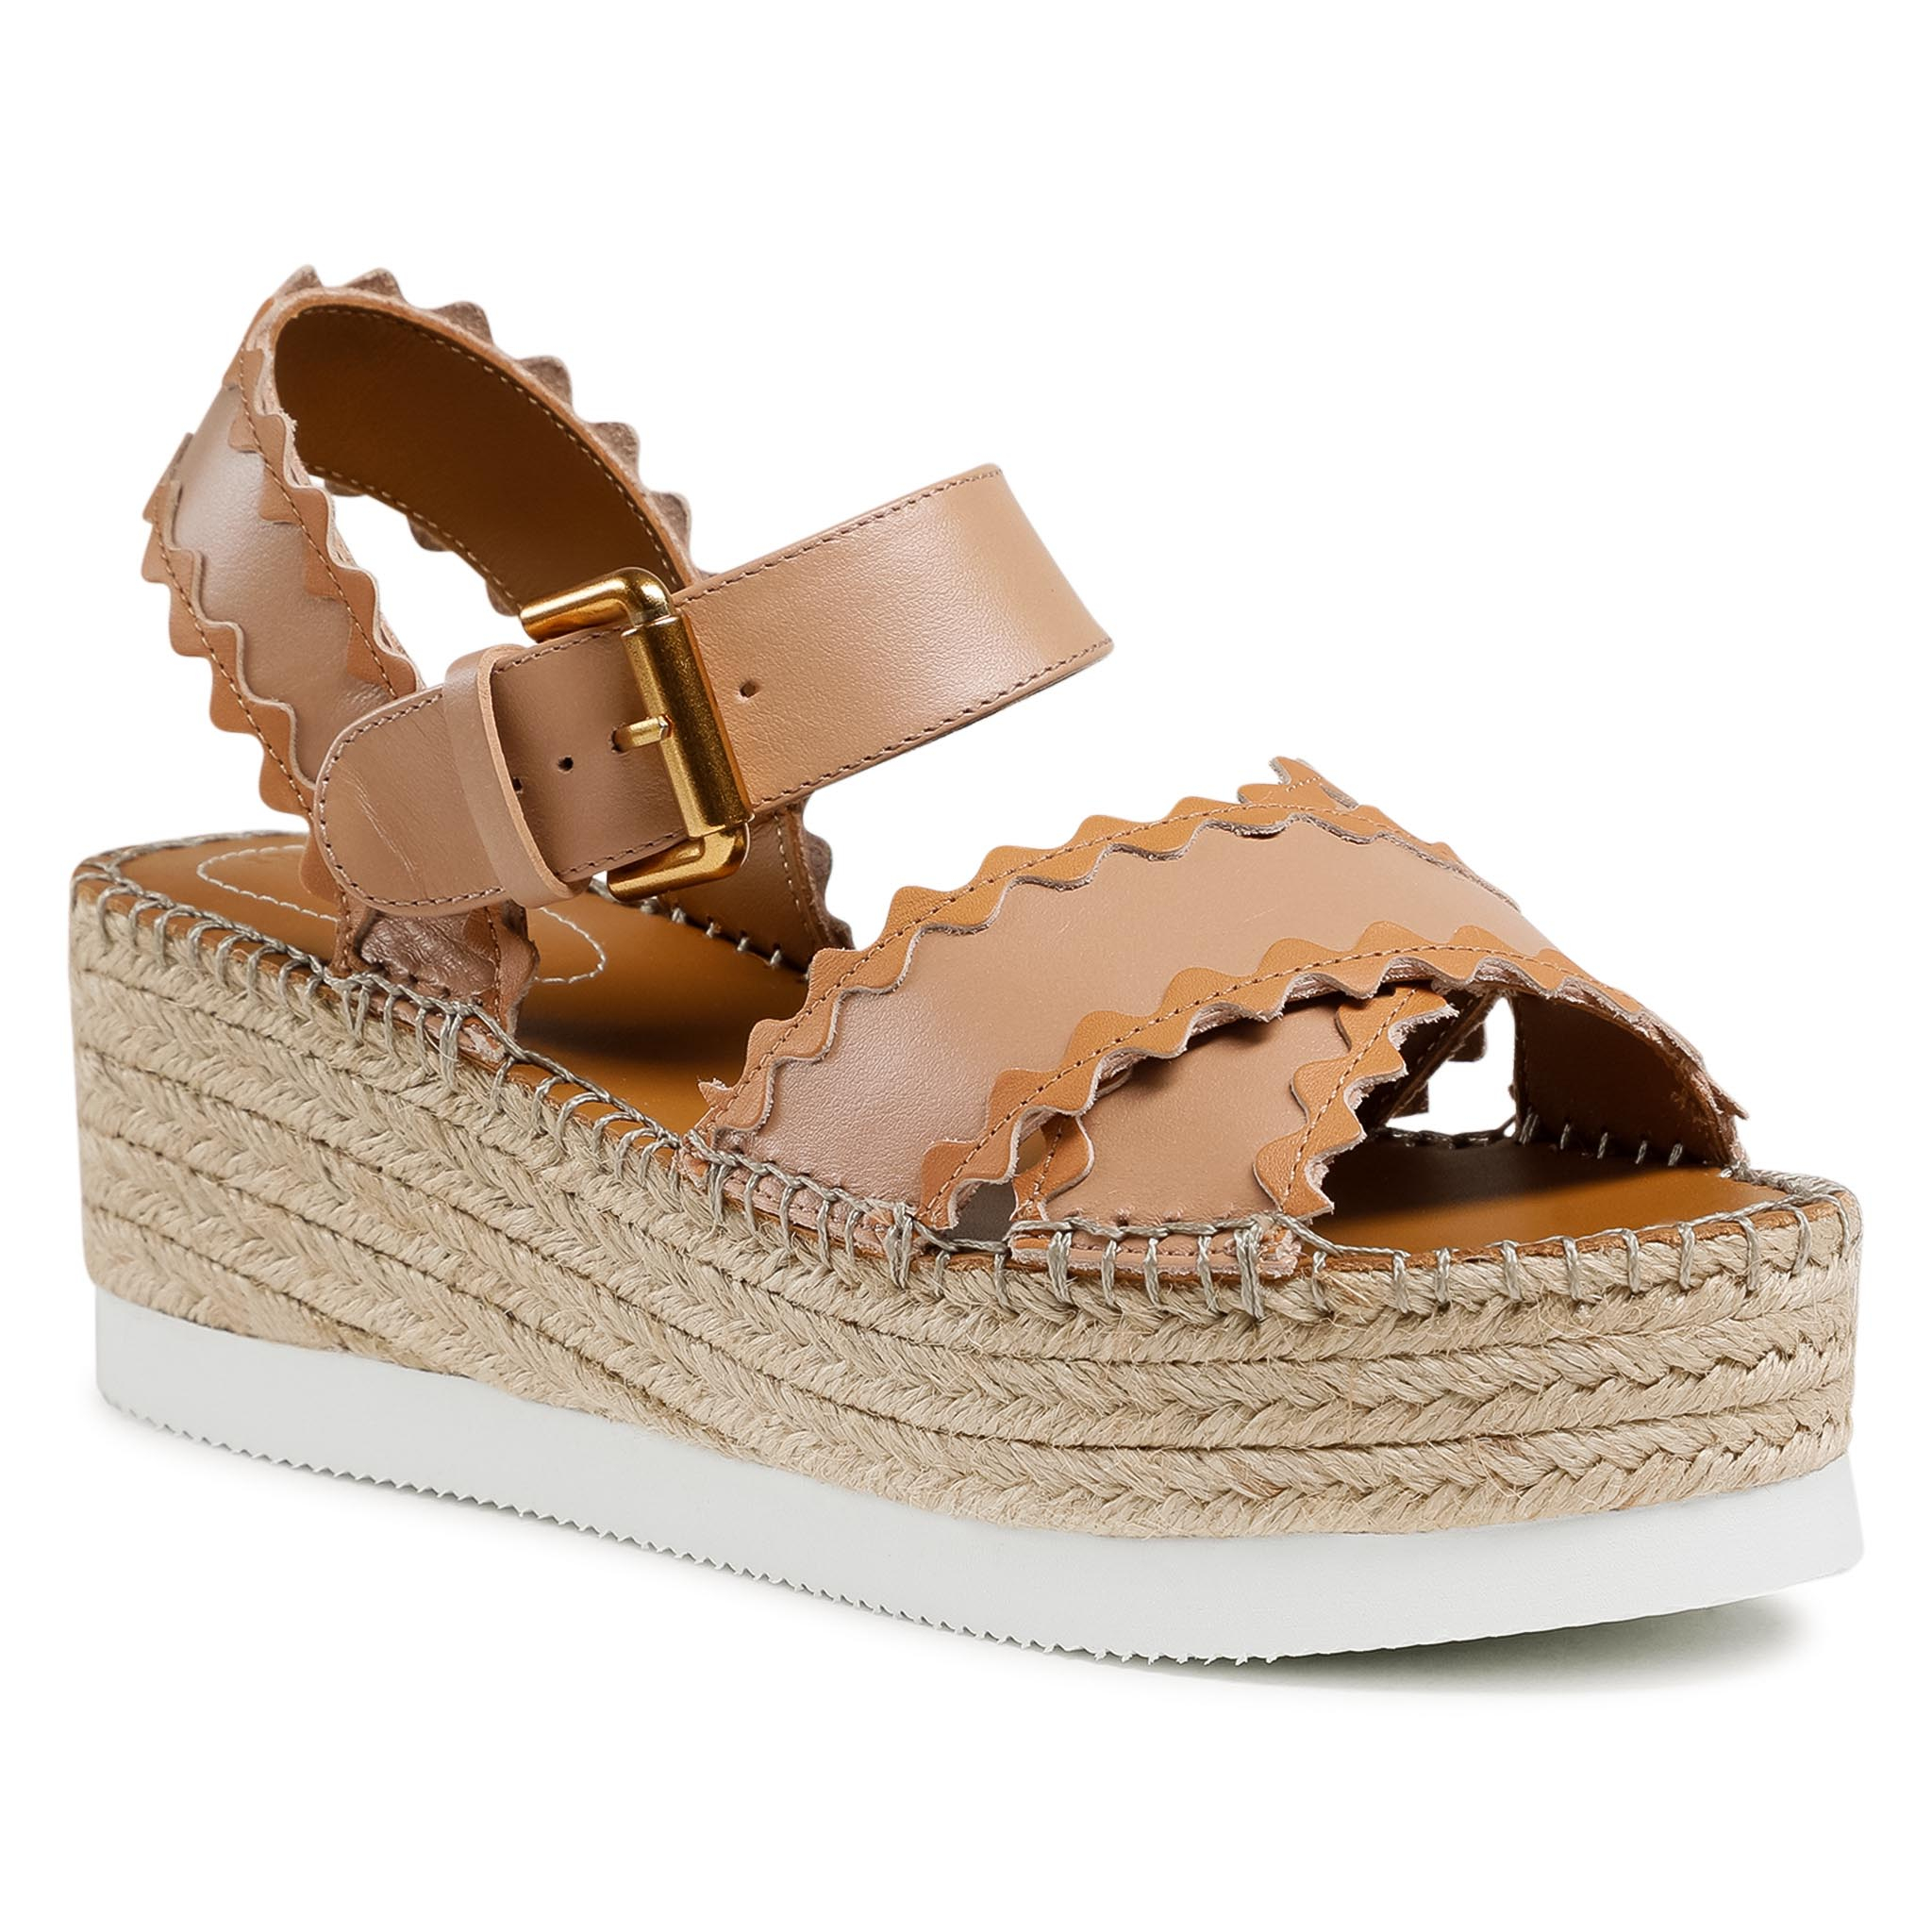 Image of Espadrillas SEE BY CHLOÉ - SB36112A Light Rose/Nat Calf 533